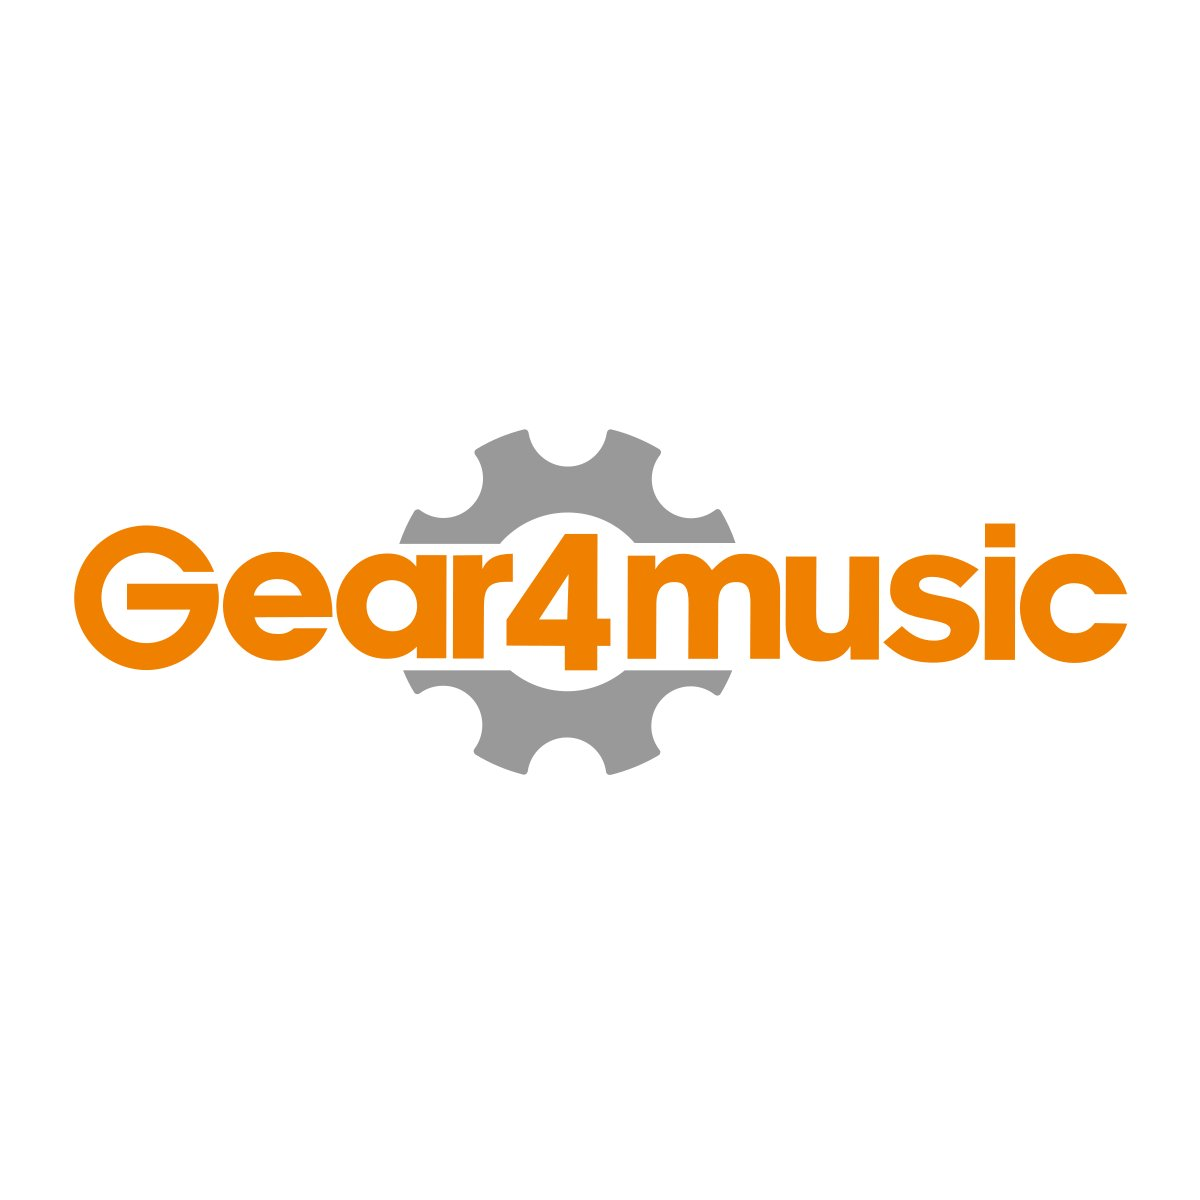 GDP-200 Pianoforte Digitale con sgabello by Gear4music